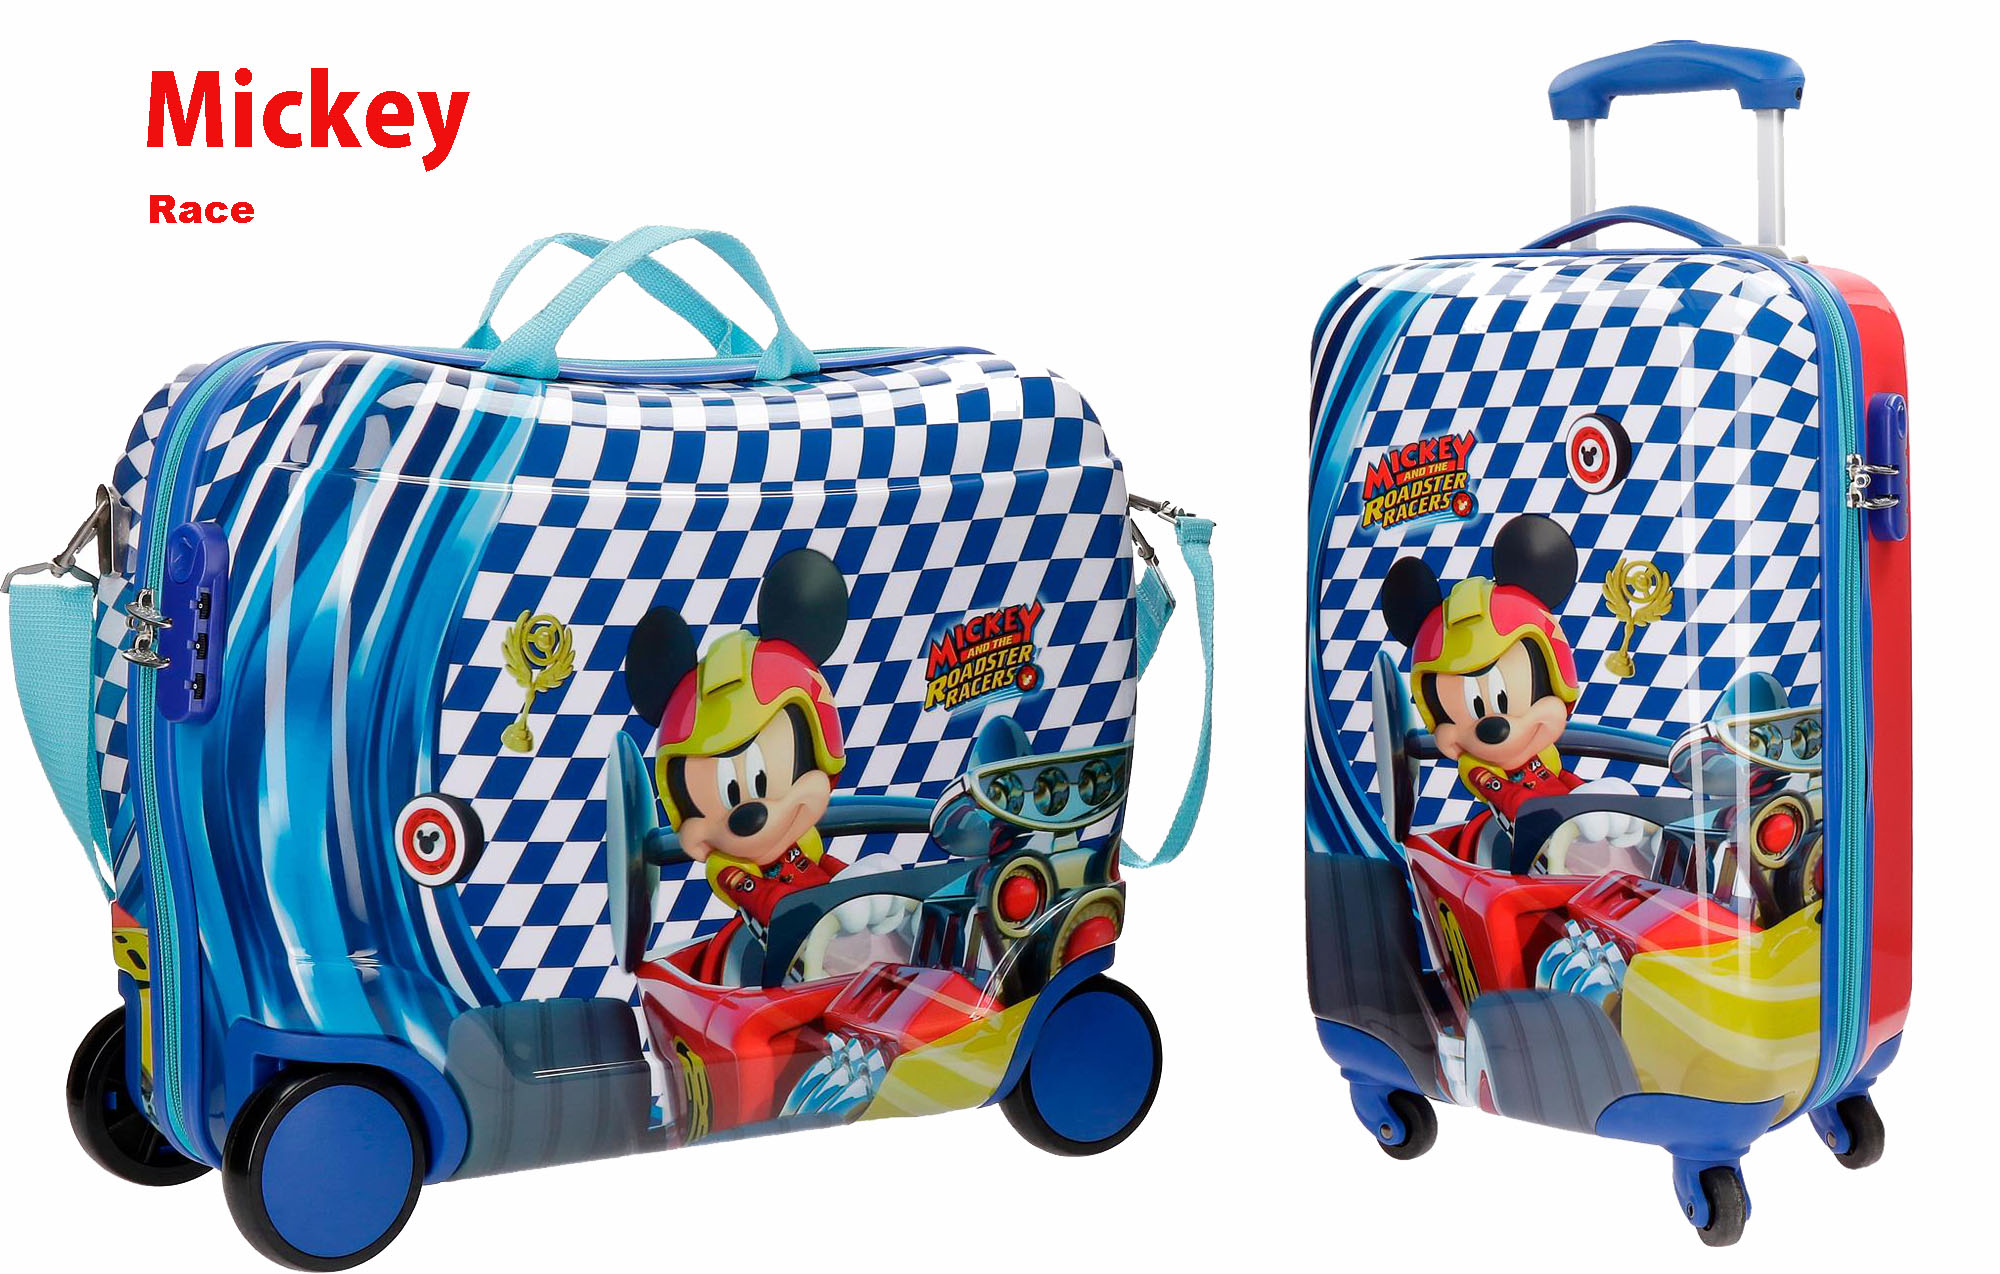 Maletas Disney Mickey Race